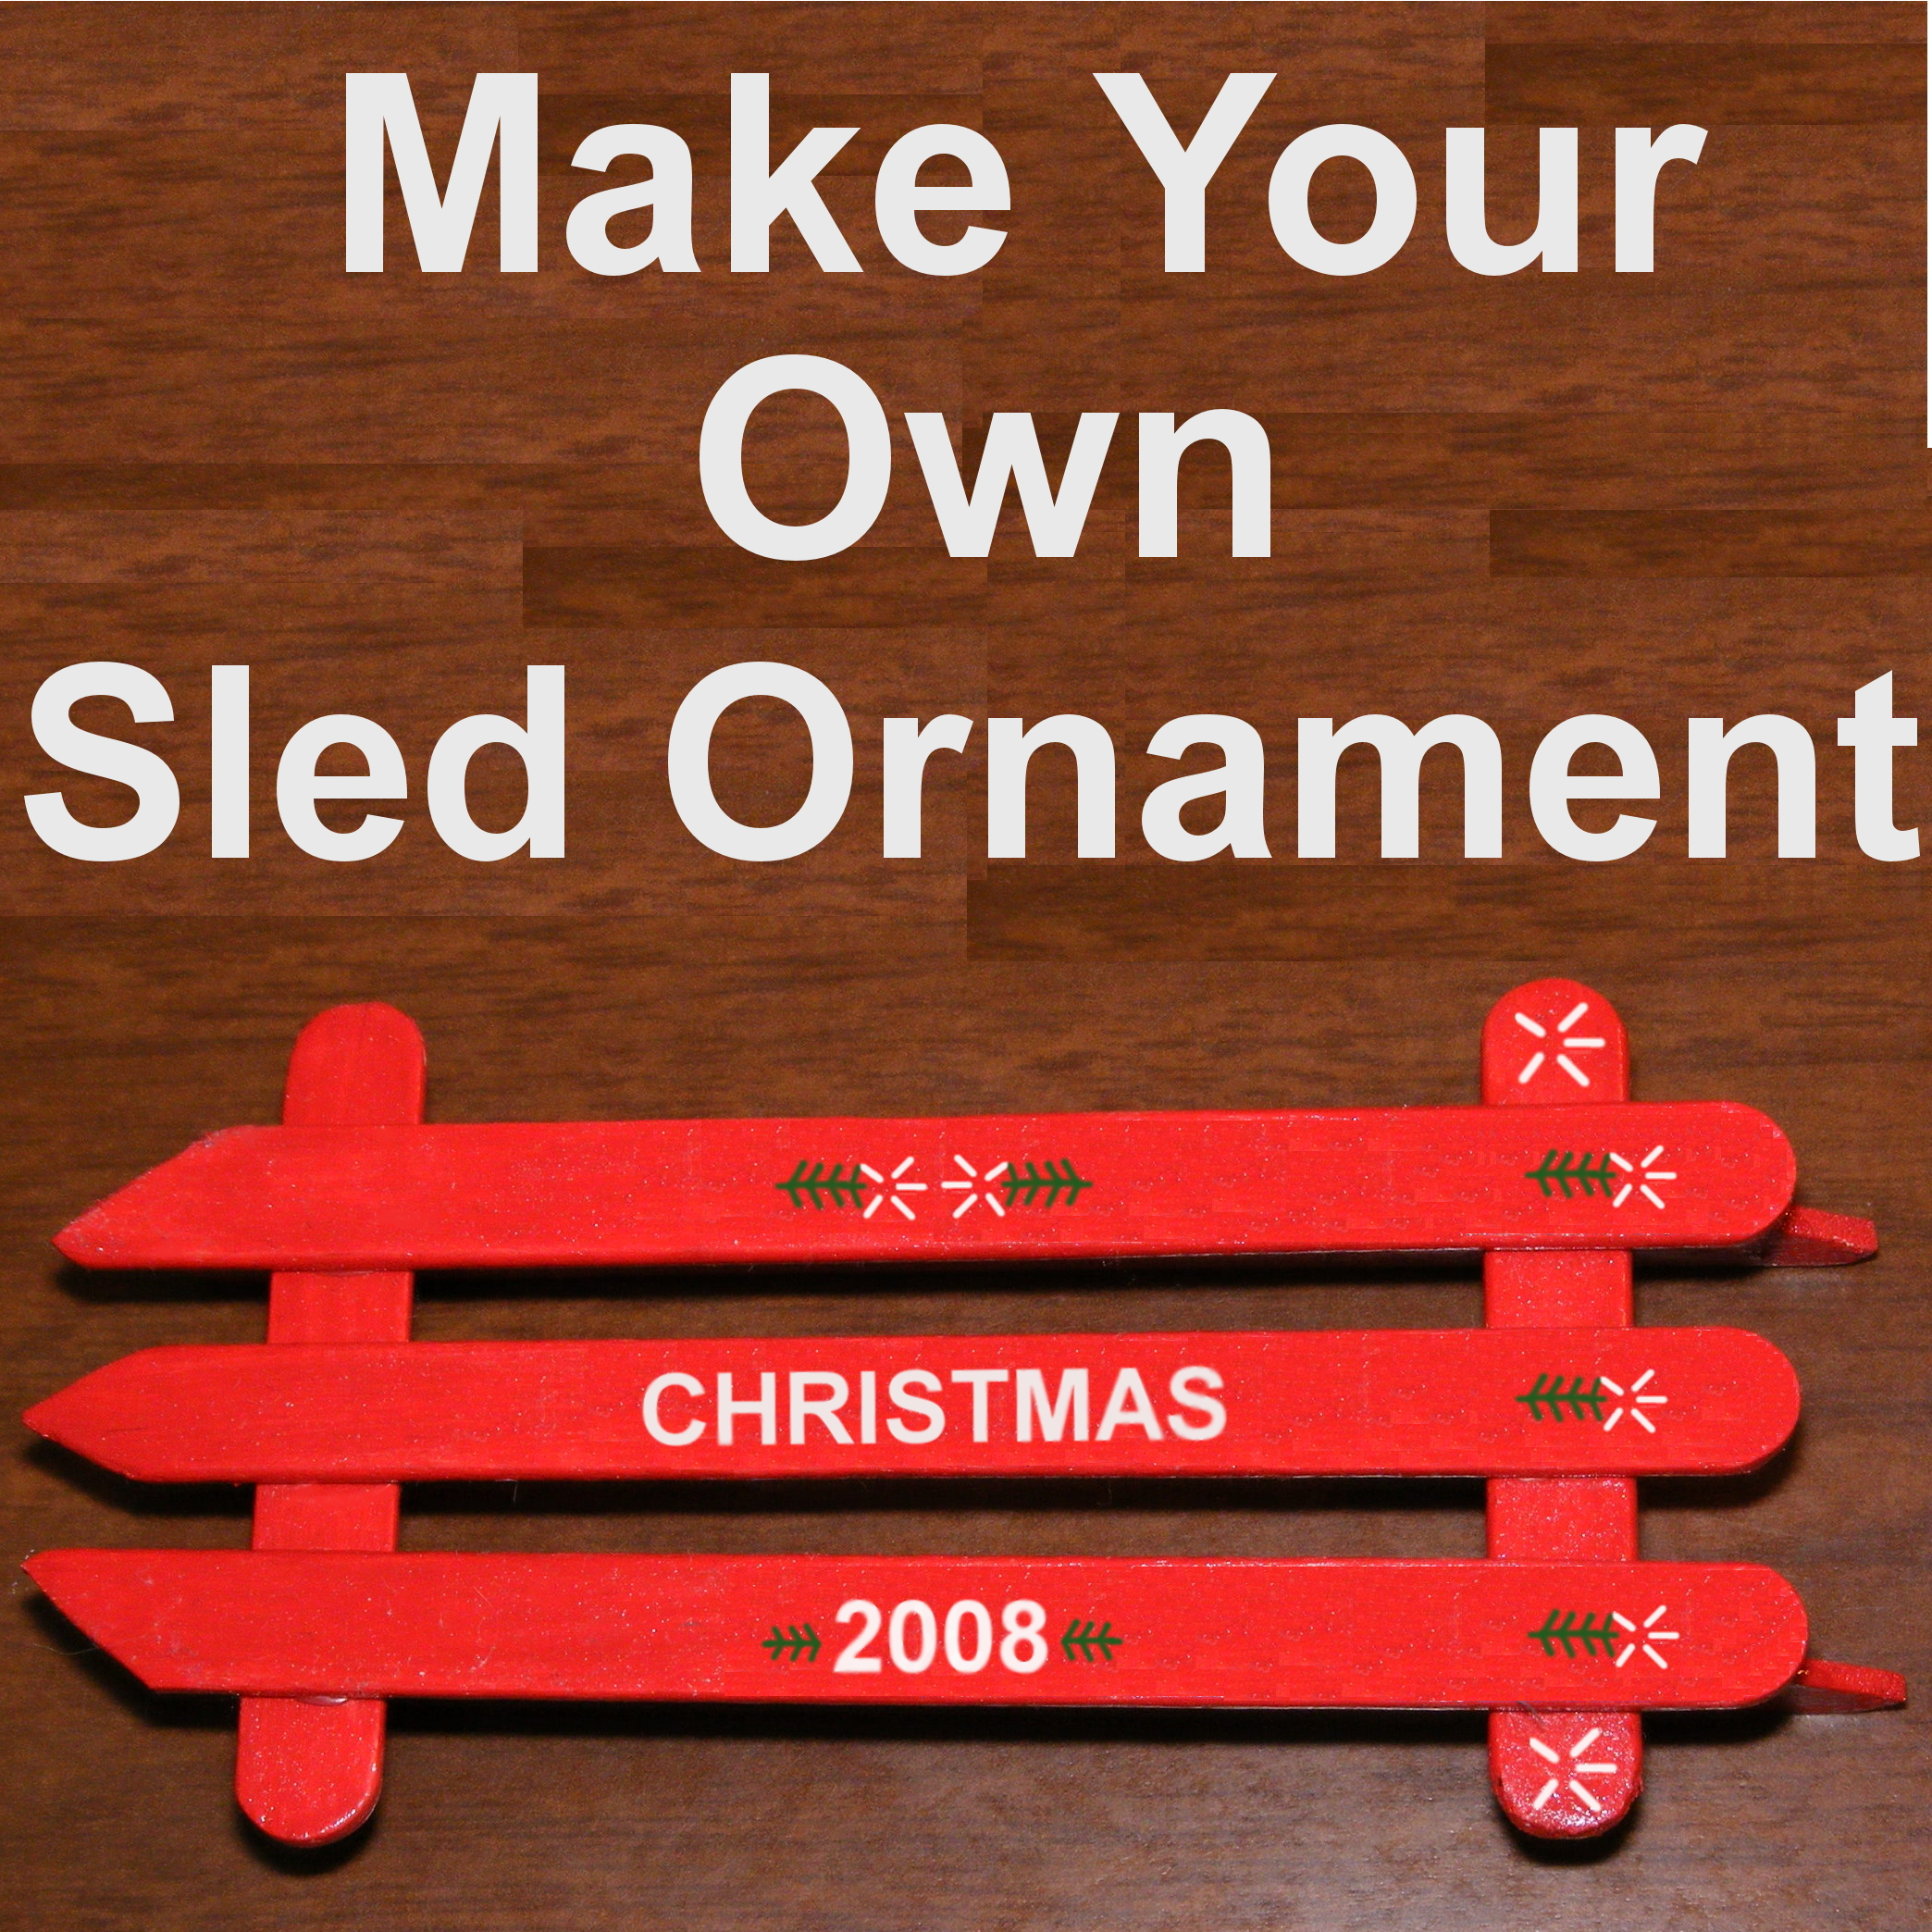 How to make a Popsicle stick sled ornament for under $2